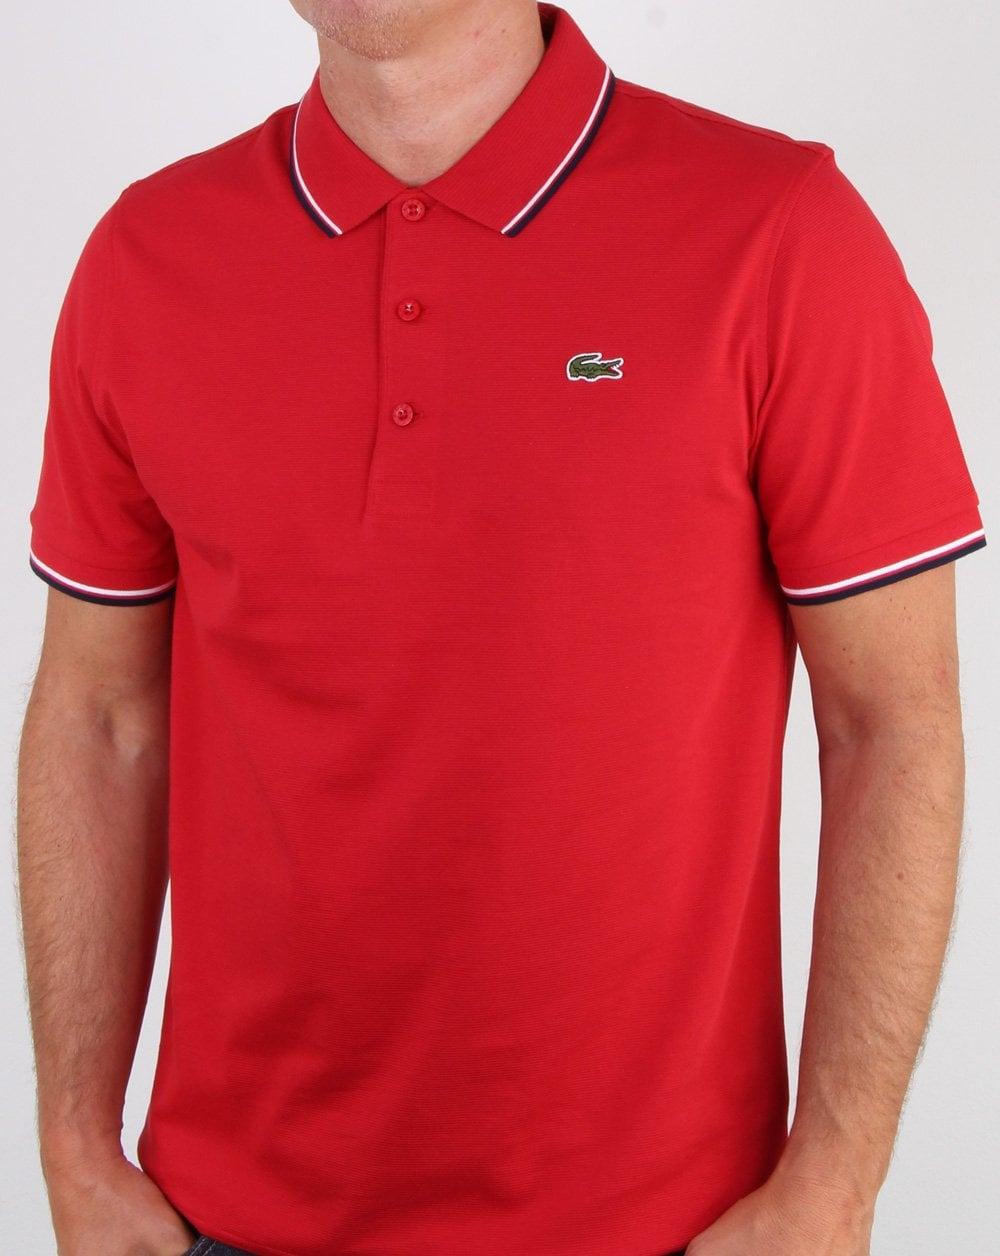 57bcaa38 Lacoste Tipped Polo Shirt Red/navy, Mens, Smart, Cotton, Polo, Summer